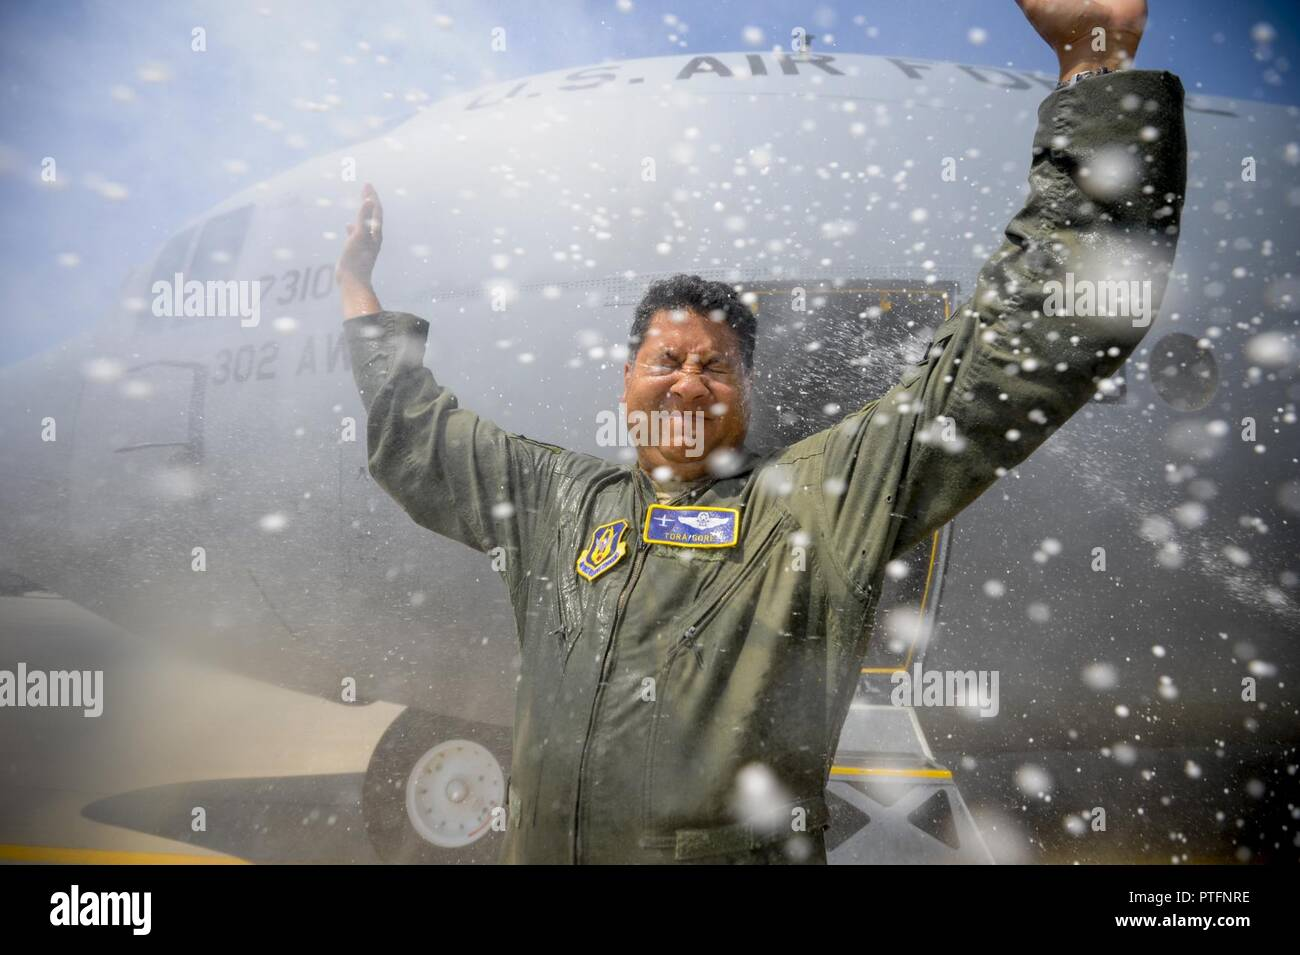 Air Force Reserve Lt. Col. Tora Gore, a C-130 flight test navigator with the 339th Flight Test Squadron, receives showers of water and champaign after flying his last mission before retirement July 20, 2017, at Robins Air Force Base, Ga. Gore completed 10 years of Air Force active-duty service before joining the Alaska Air National Guard in 2004 and the Air Force Reserve in 2008. - Stock Image